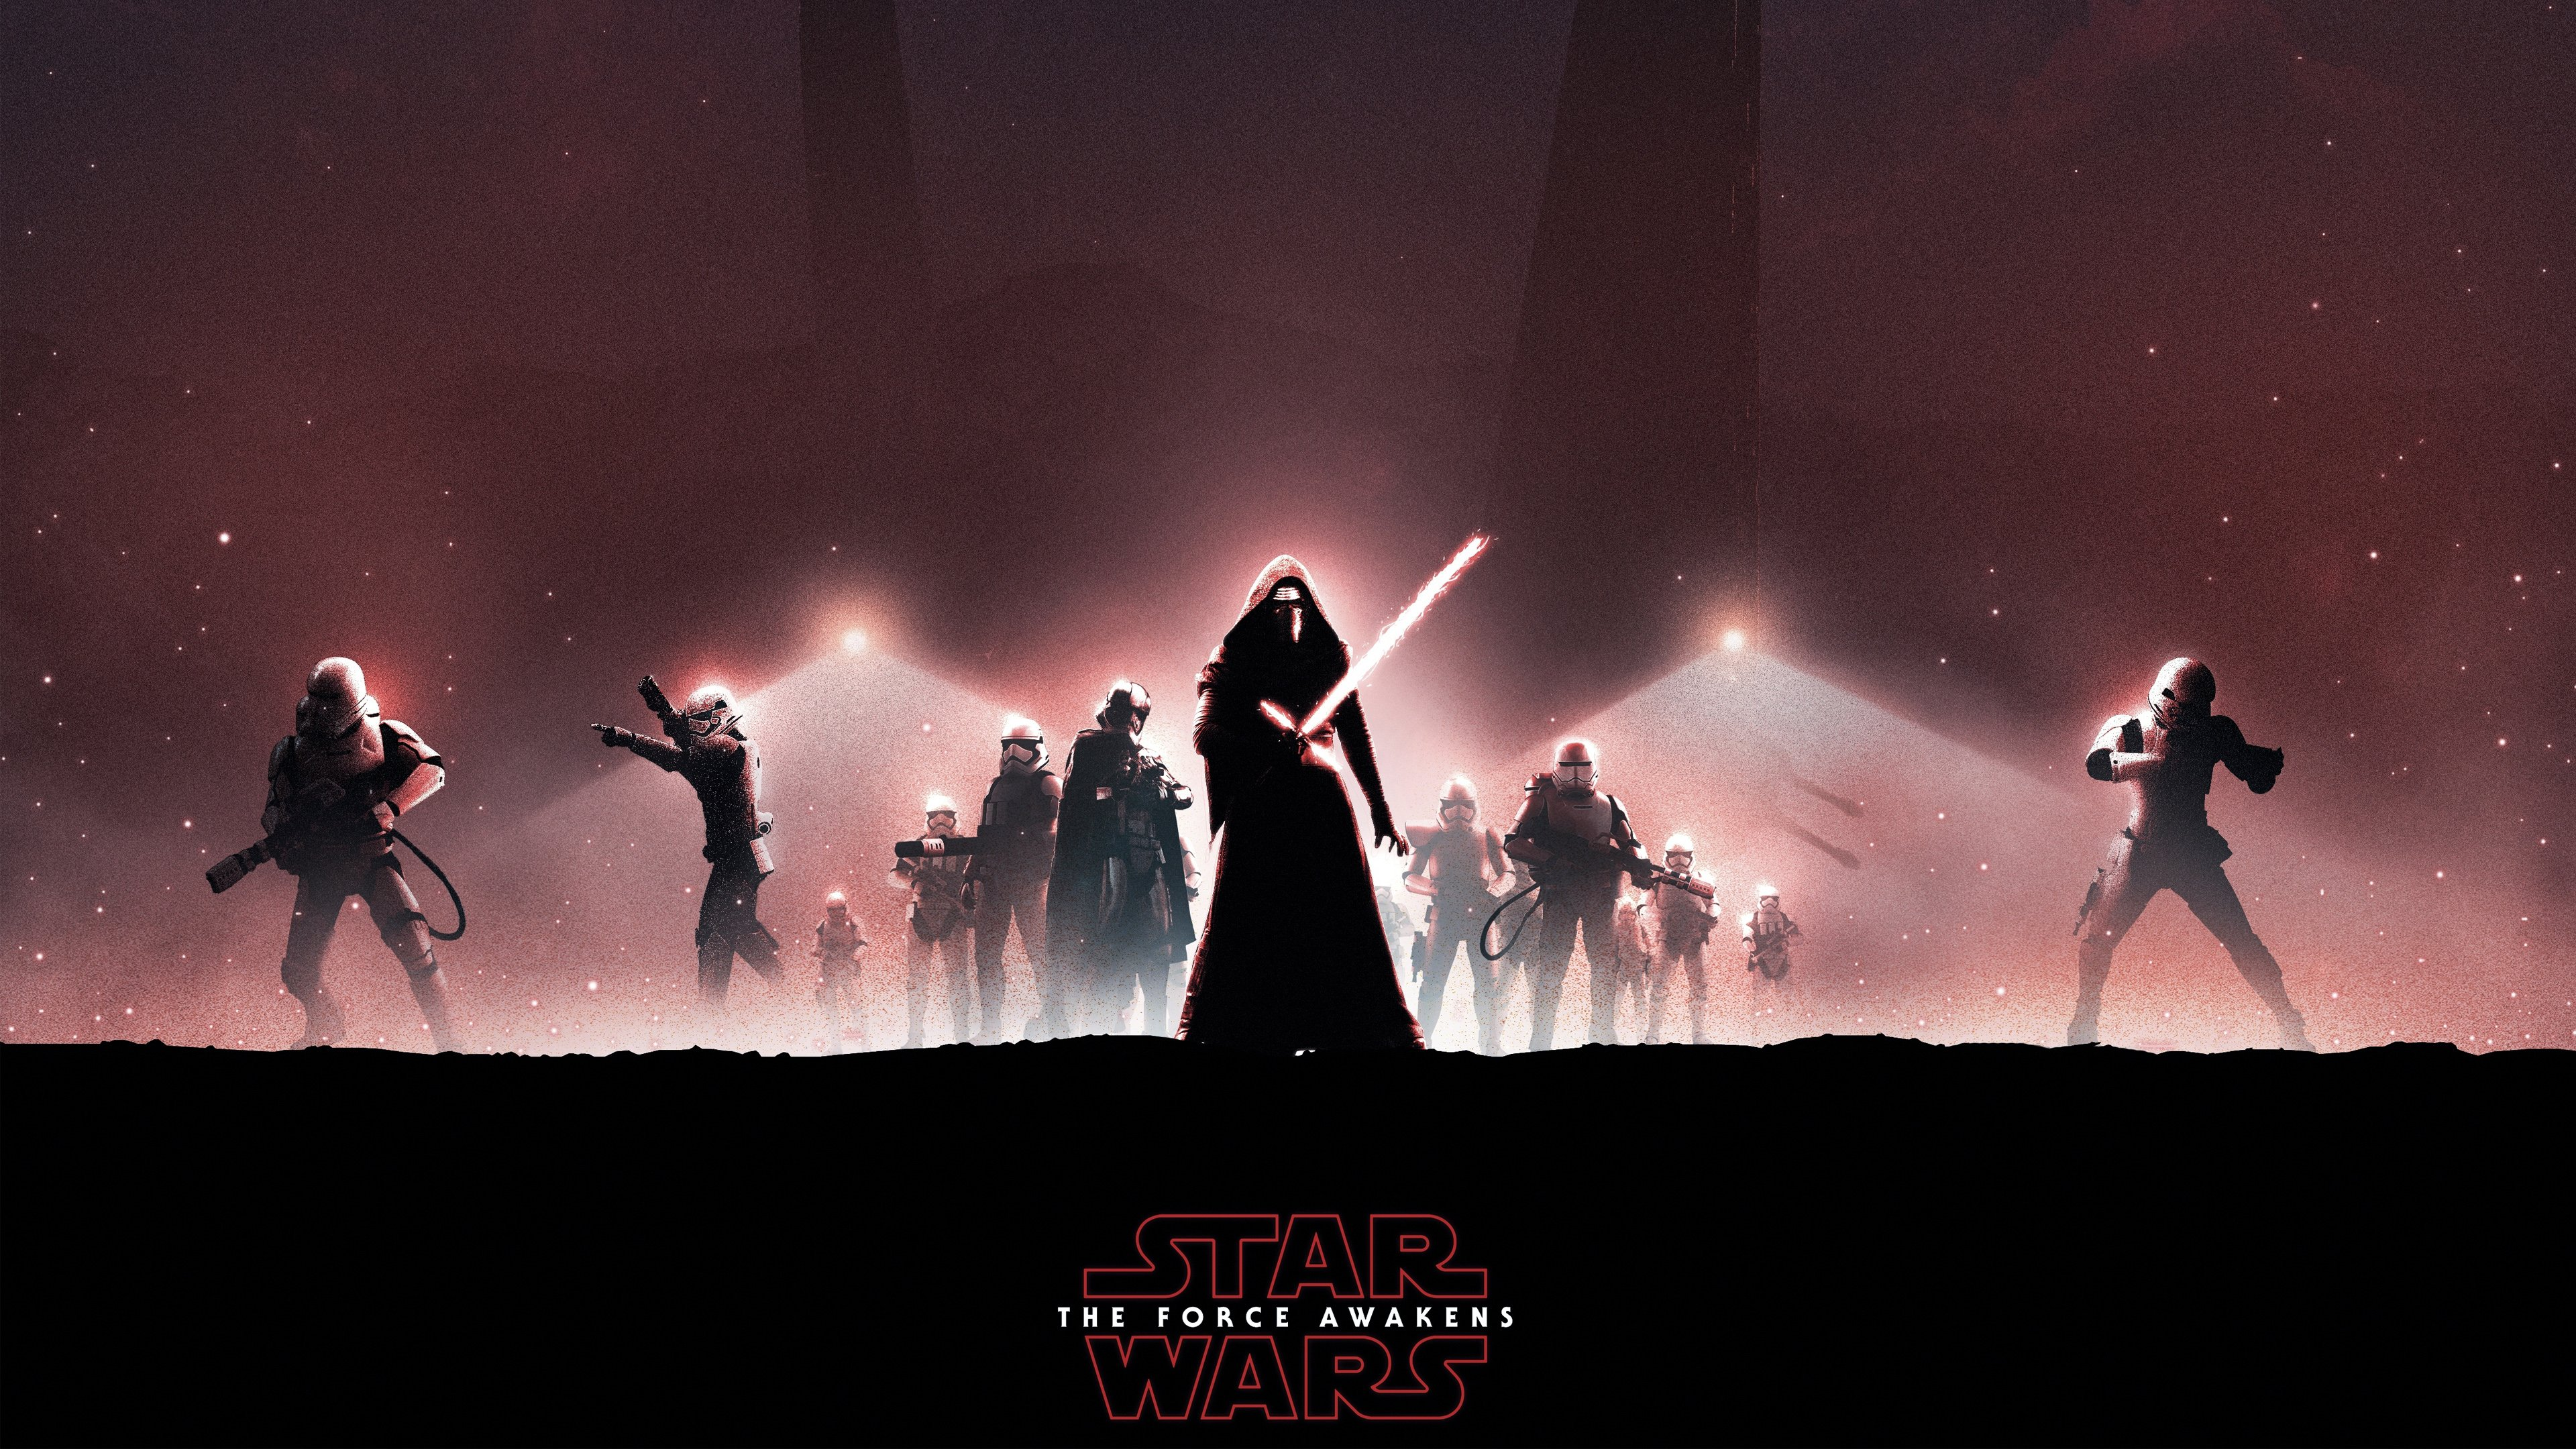 Kylo Ren The Force Awakens Wallpapers HD Wallpapers 3840x2160